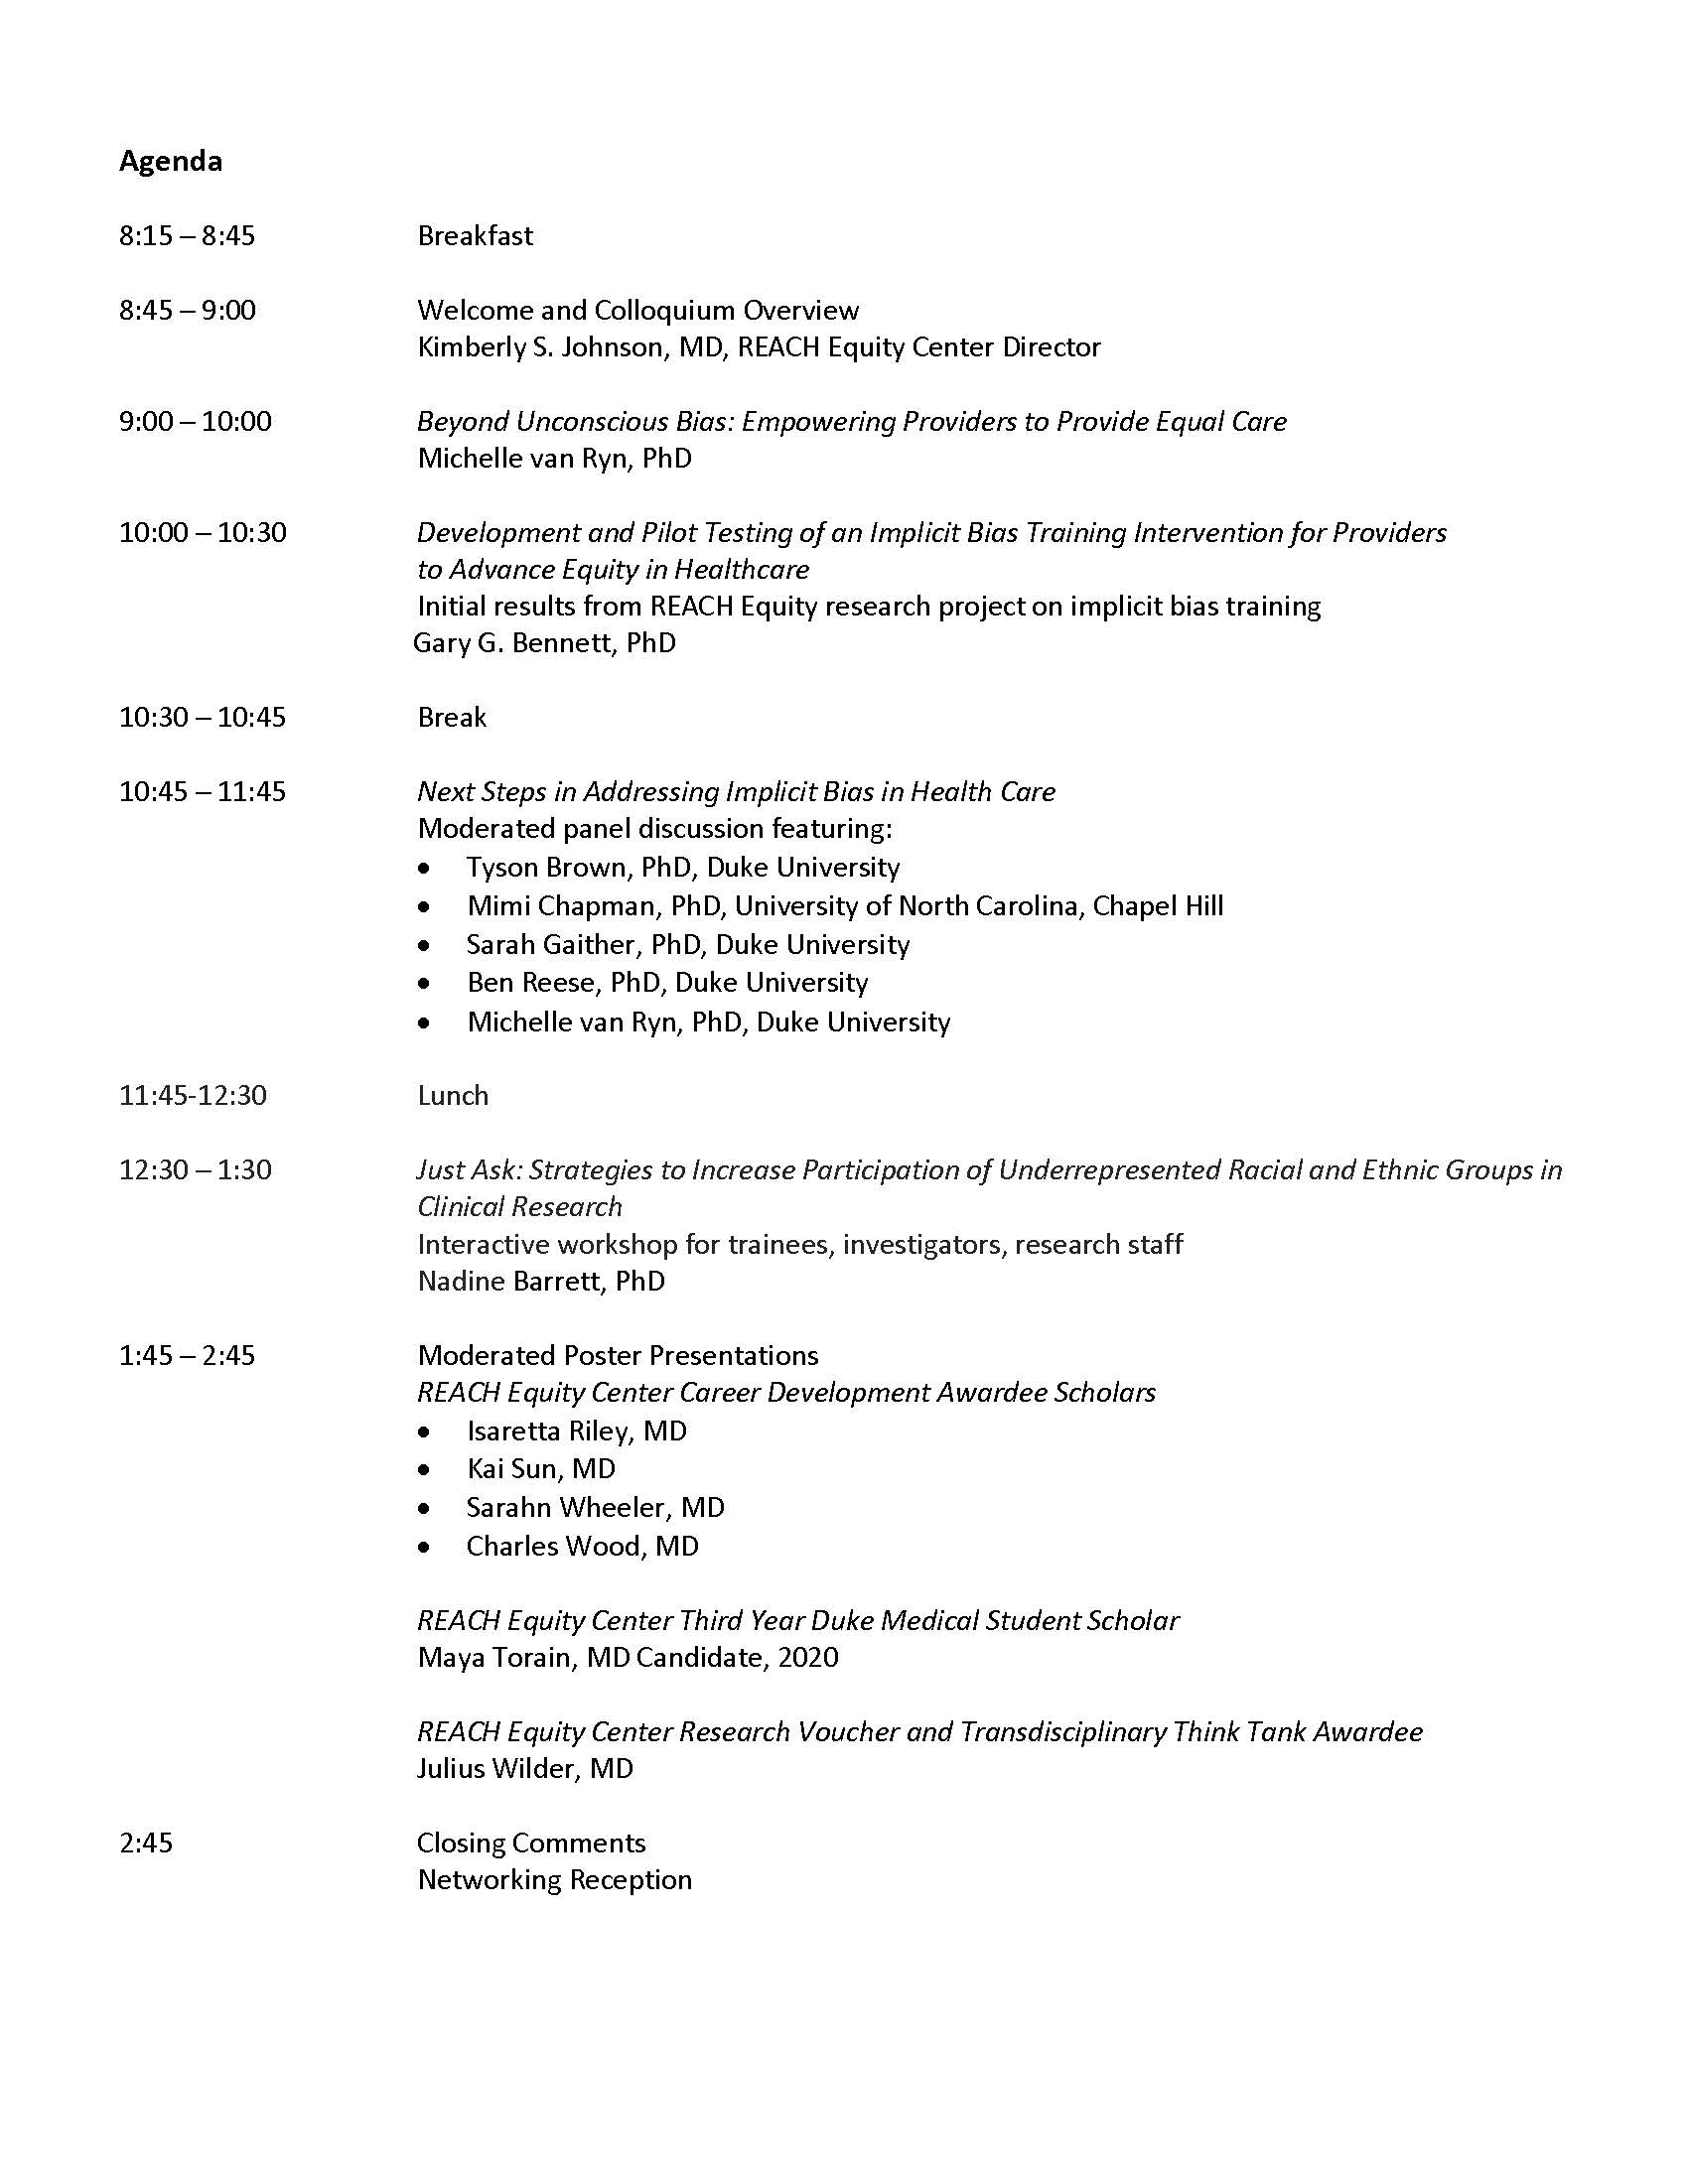 This is the agenda for the May 2019 REACH Equity Colloquium.